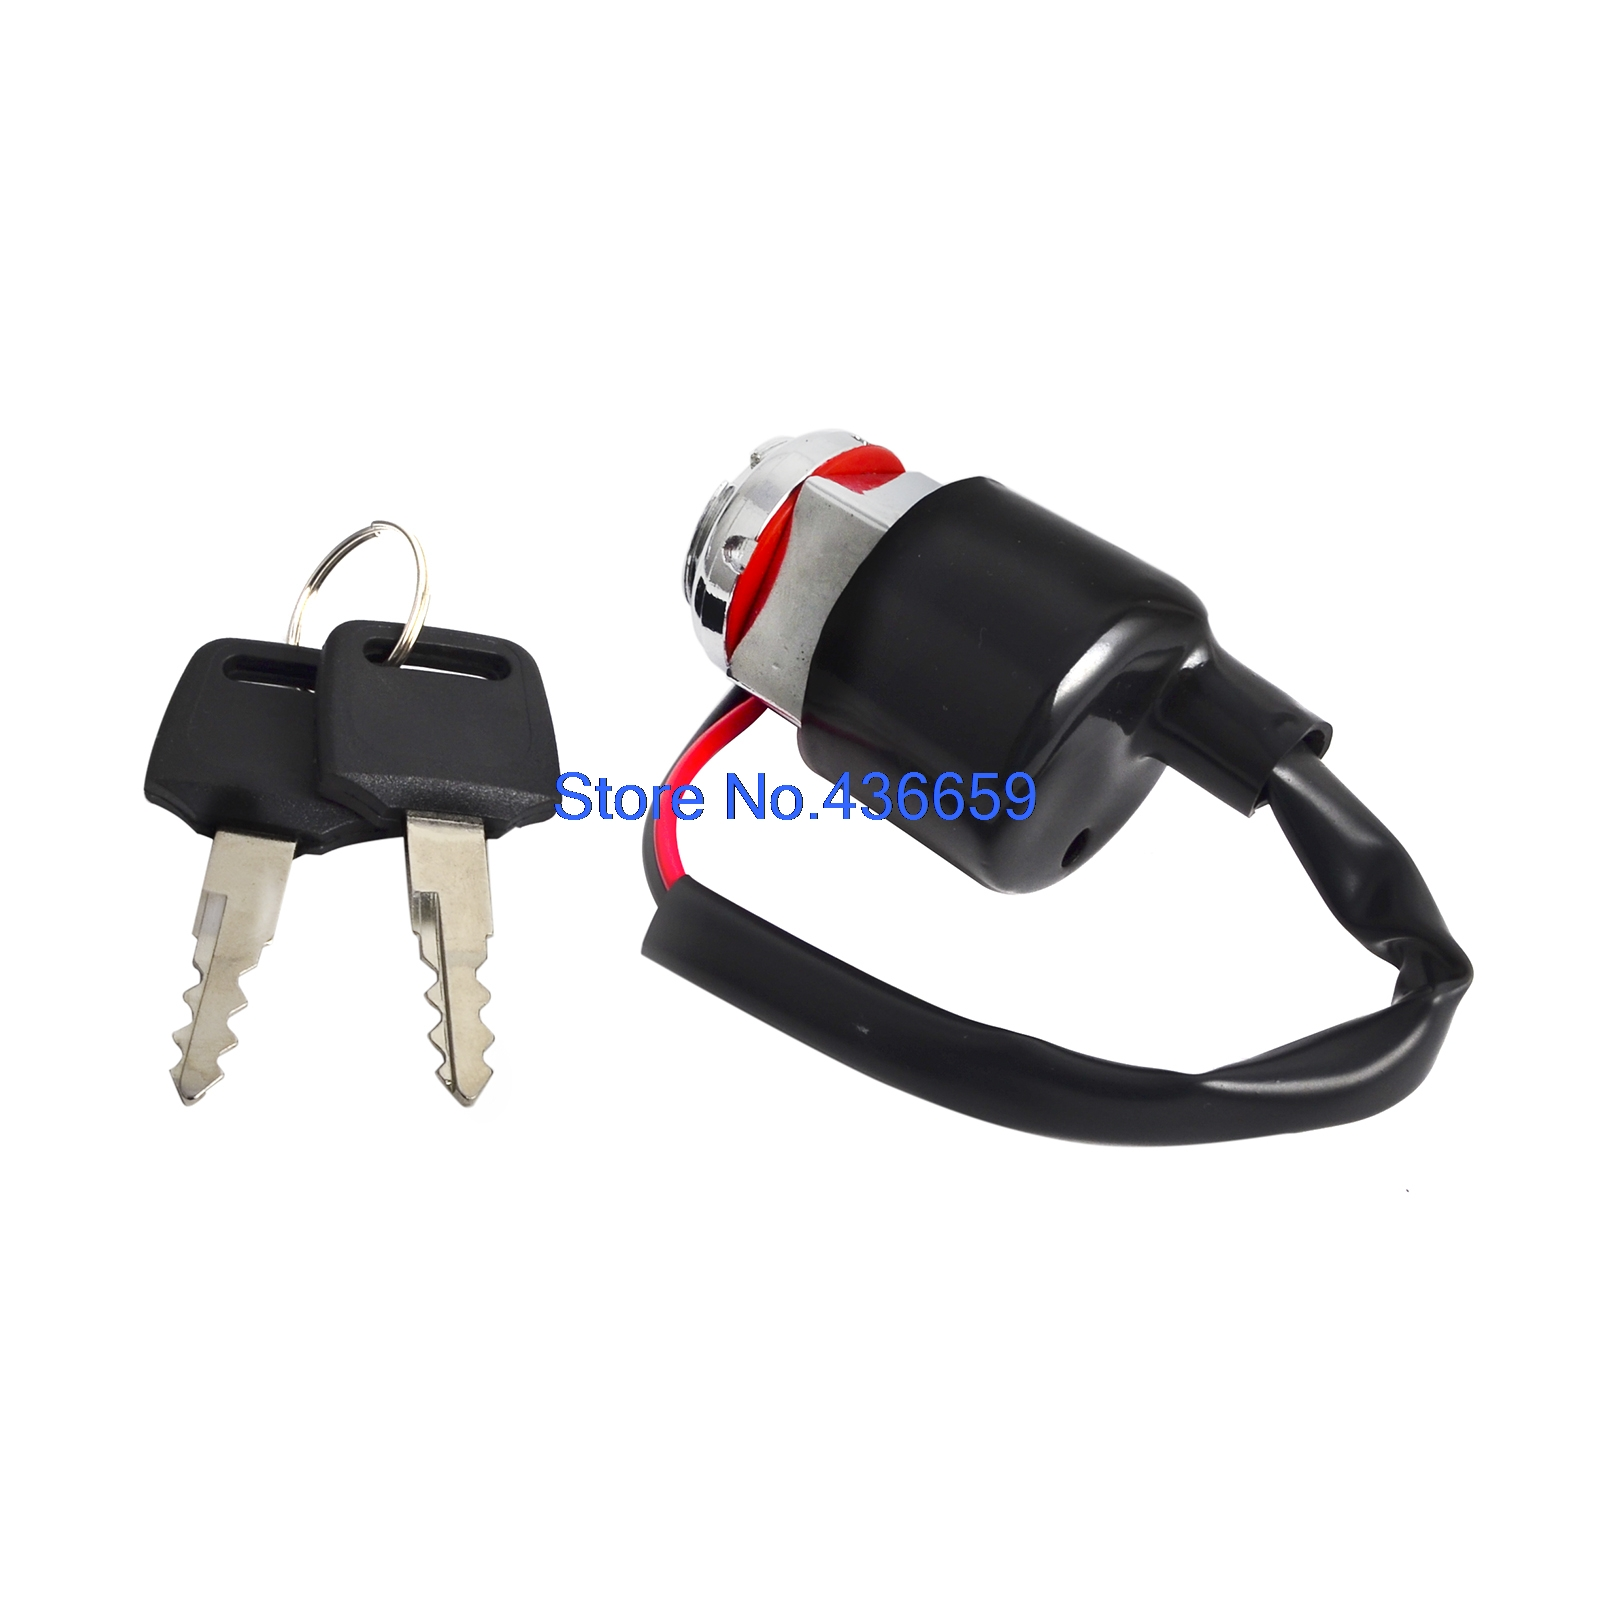 small resolution of ignition switch with 2 keys 2 wire for honda cb100 super sport 100 cb125 cl70 cl90